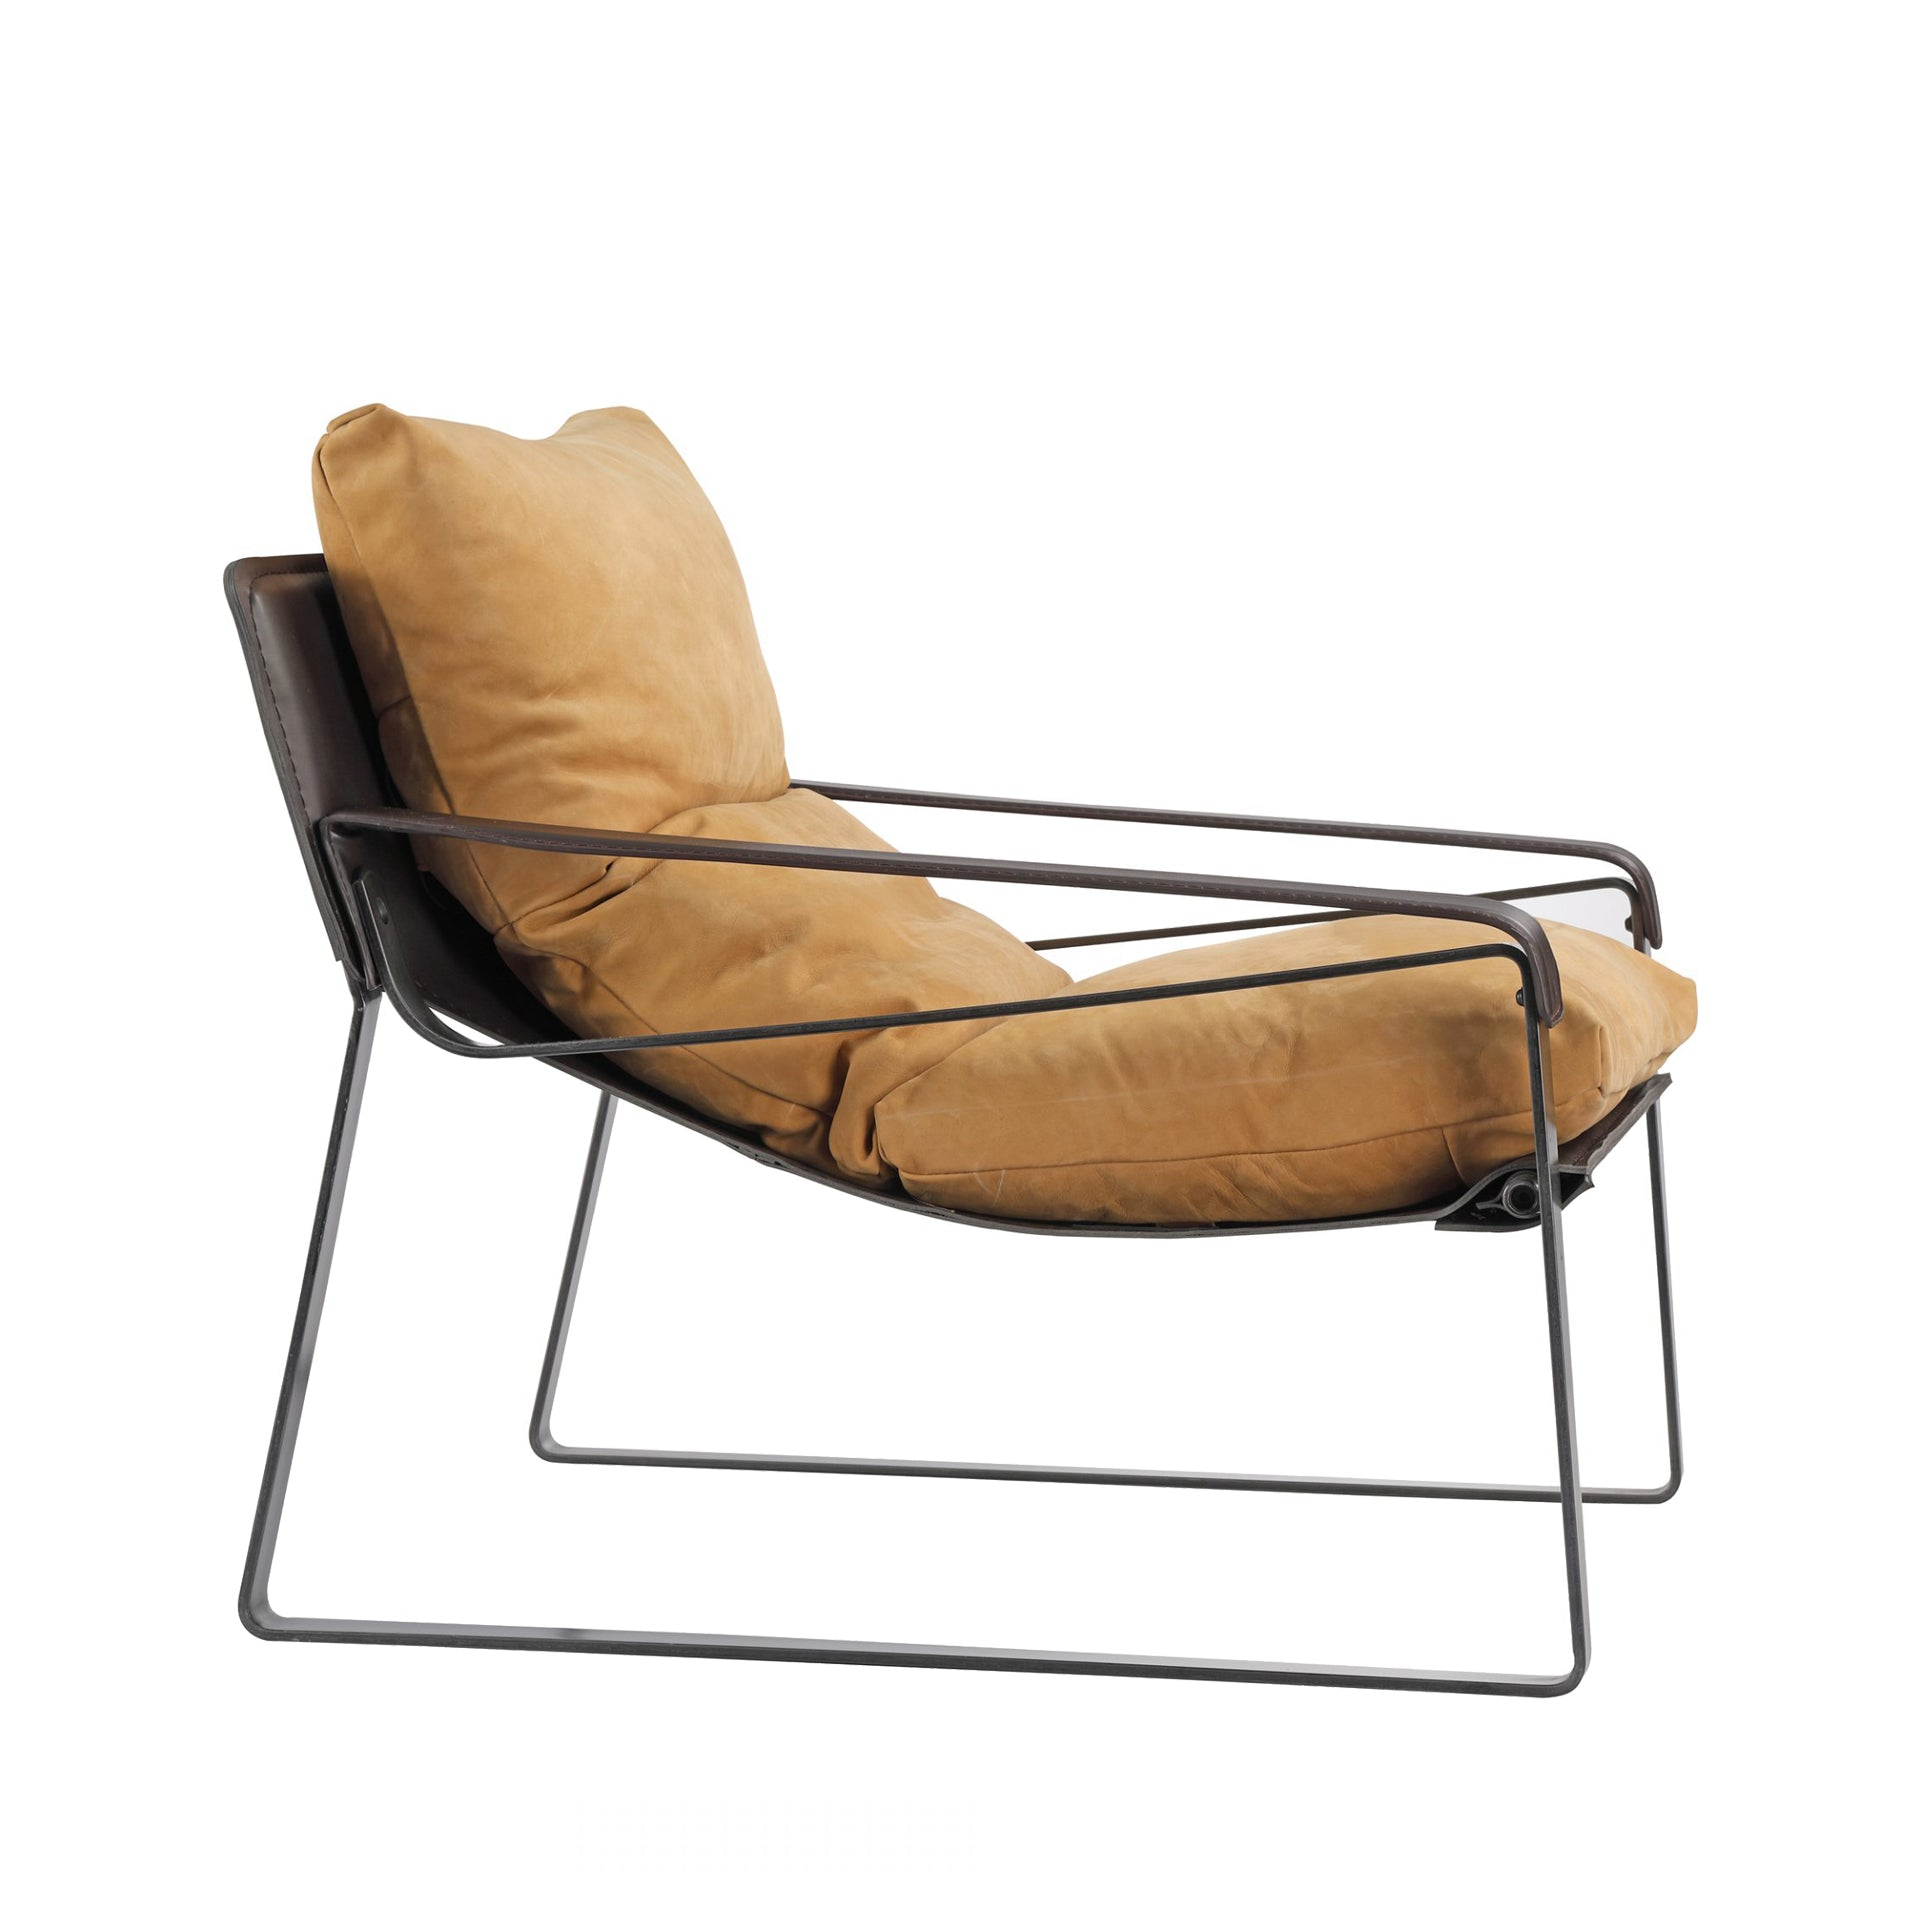 Incredible Connor Leather Club Chair Inzonedesignstudio Interior Chair Design Inzonedesignstudiocom